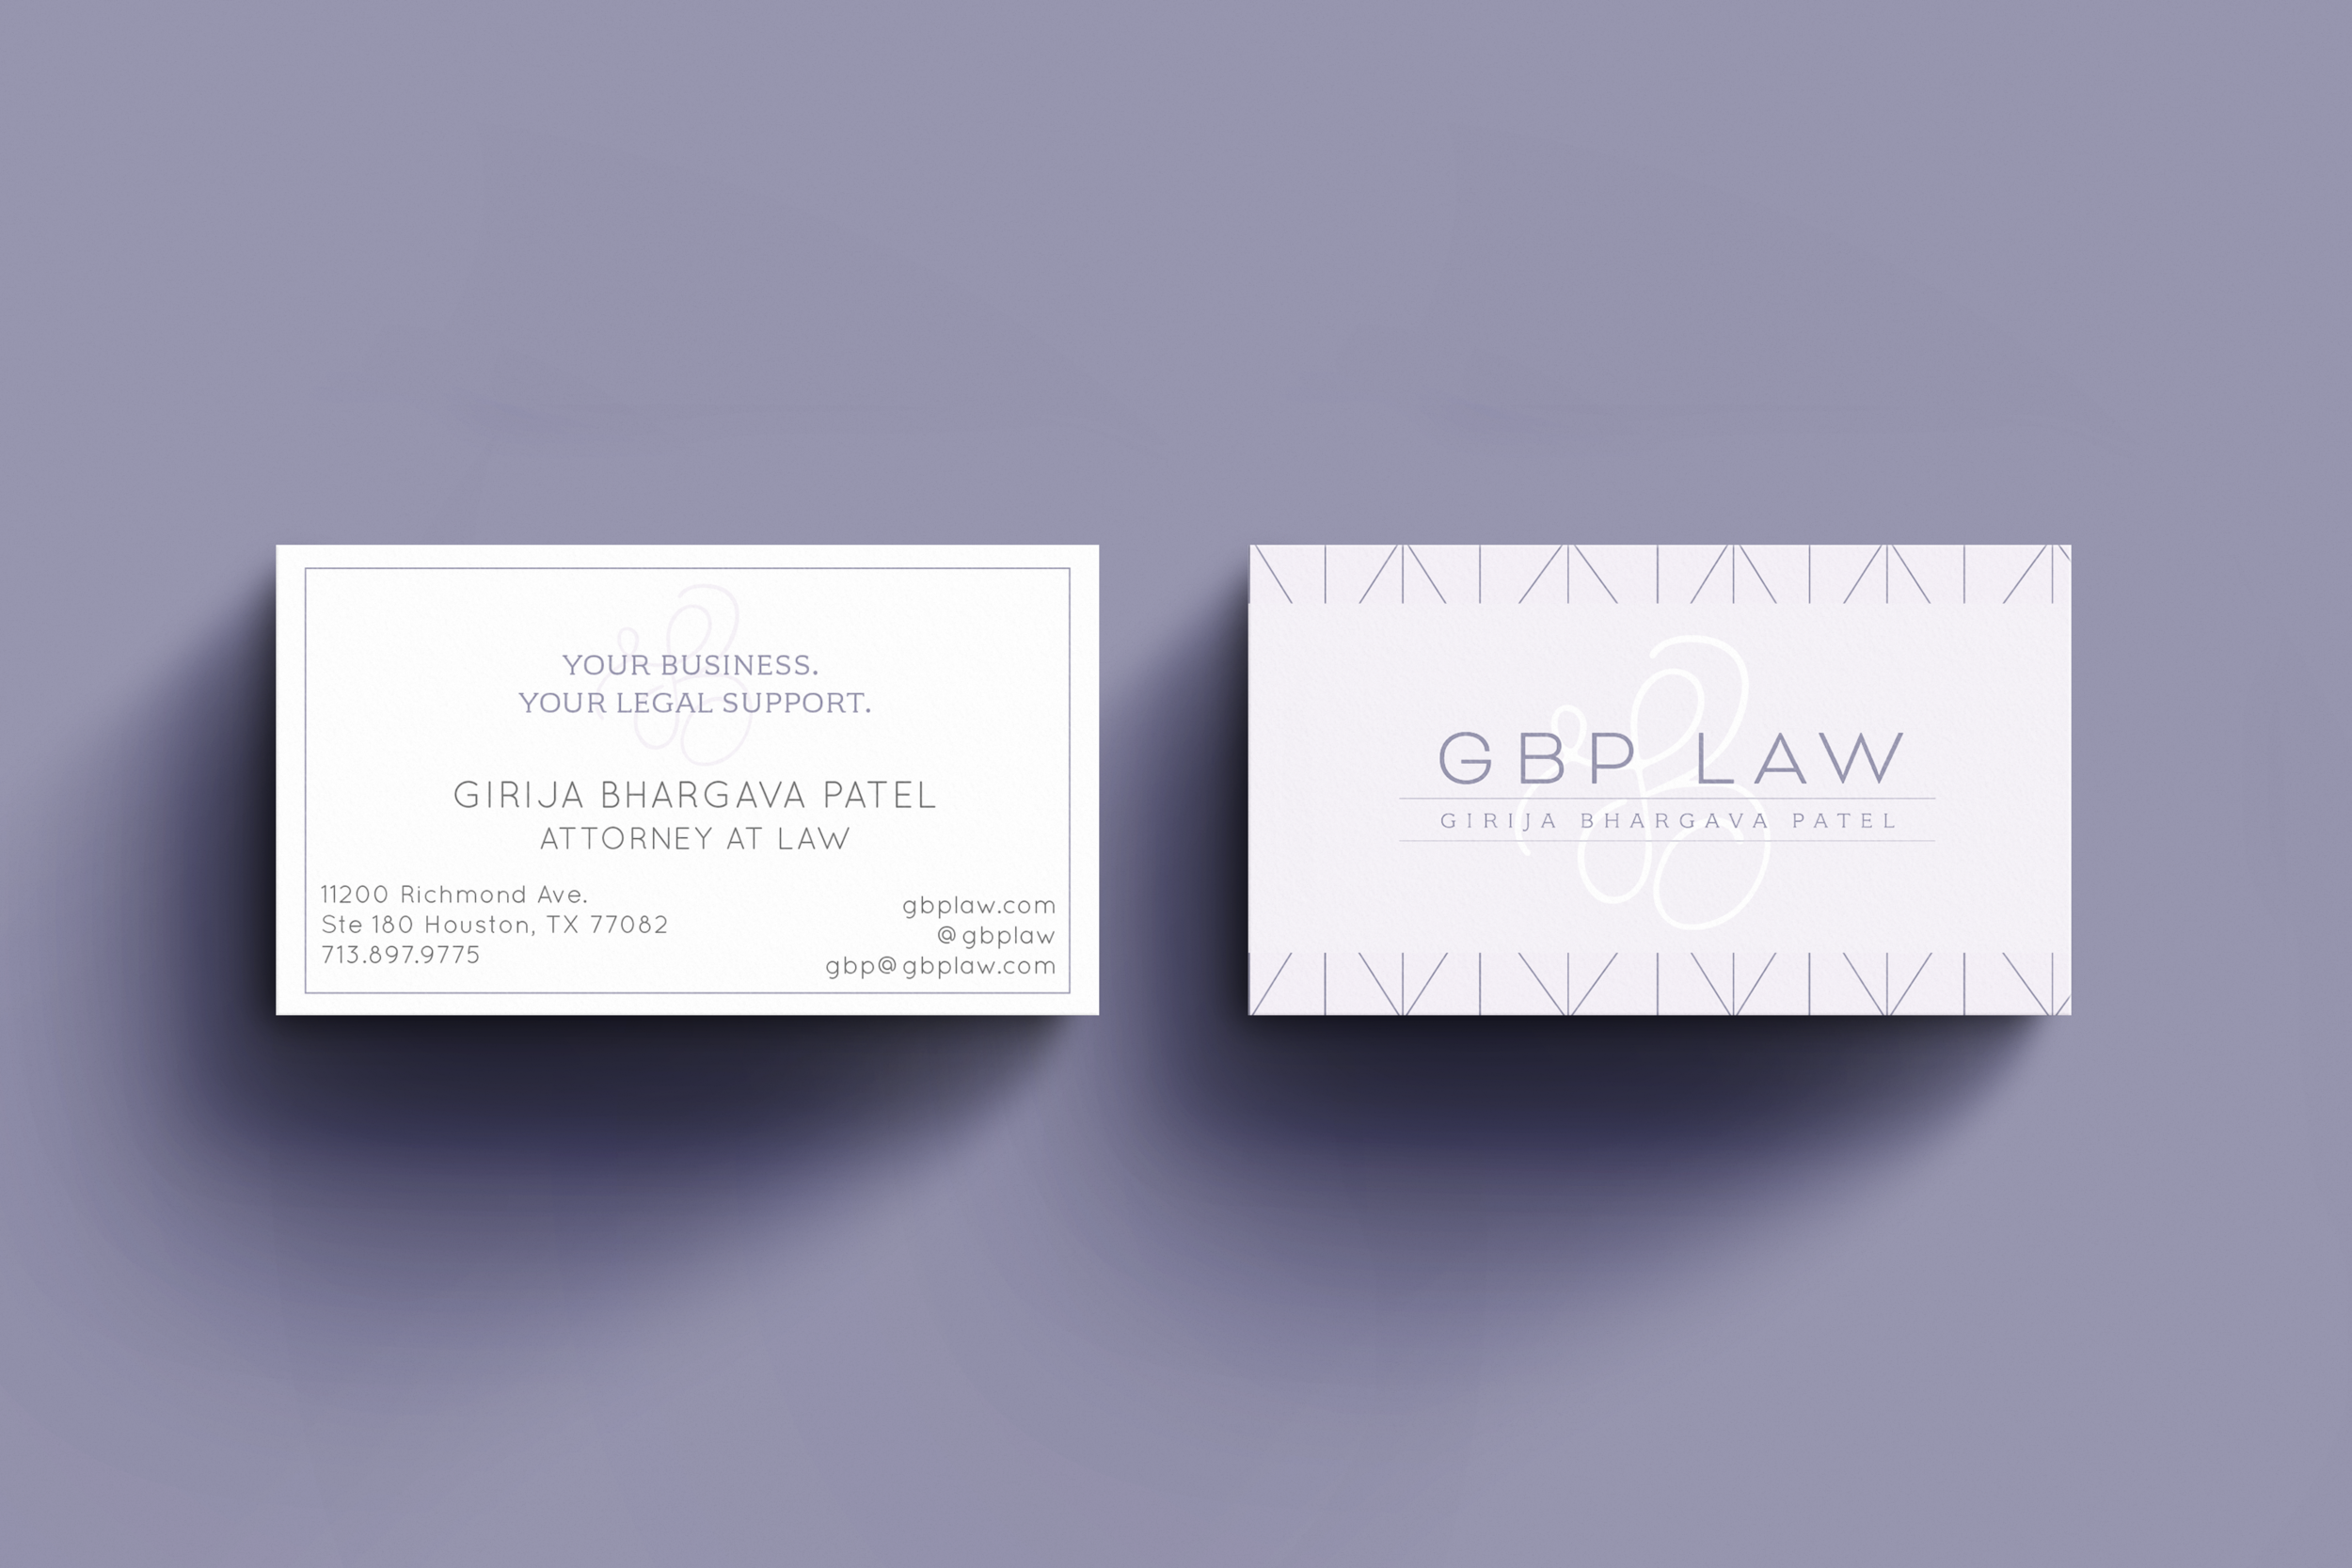 GBP Law Business Cards and Branding by Kindly by Kelsea